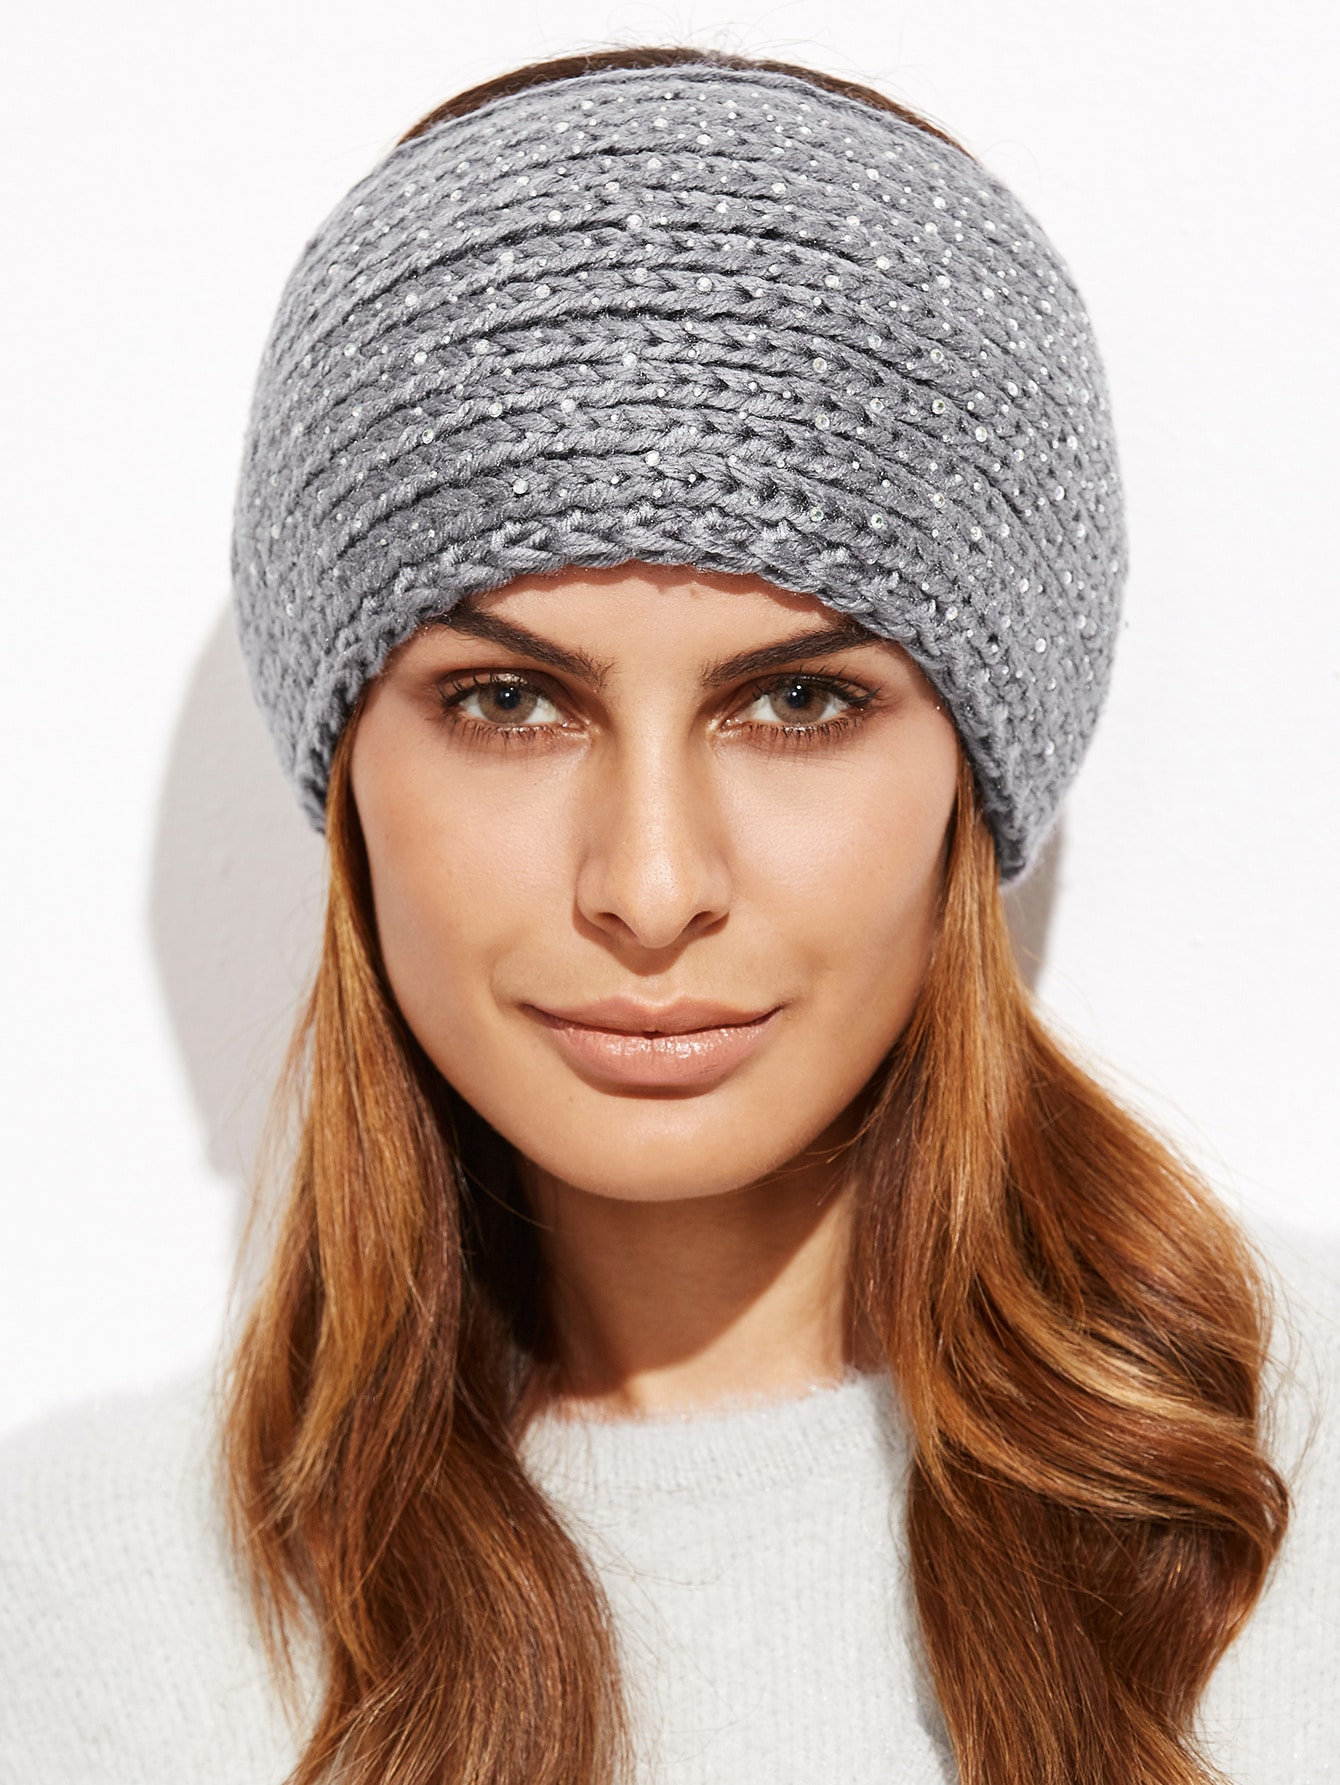 Grey Rhinestone Studded Textured Knit HeadbandGrey Rhinestone Studded Textured Knit Headband<br><br>color: Grey<br>size: None